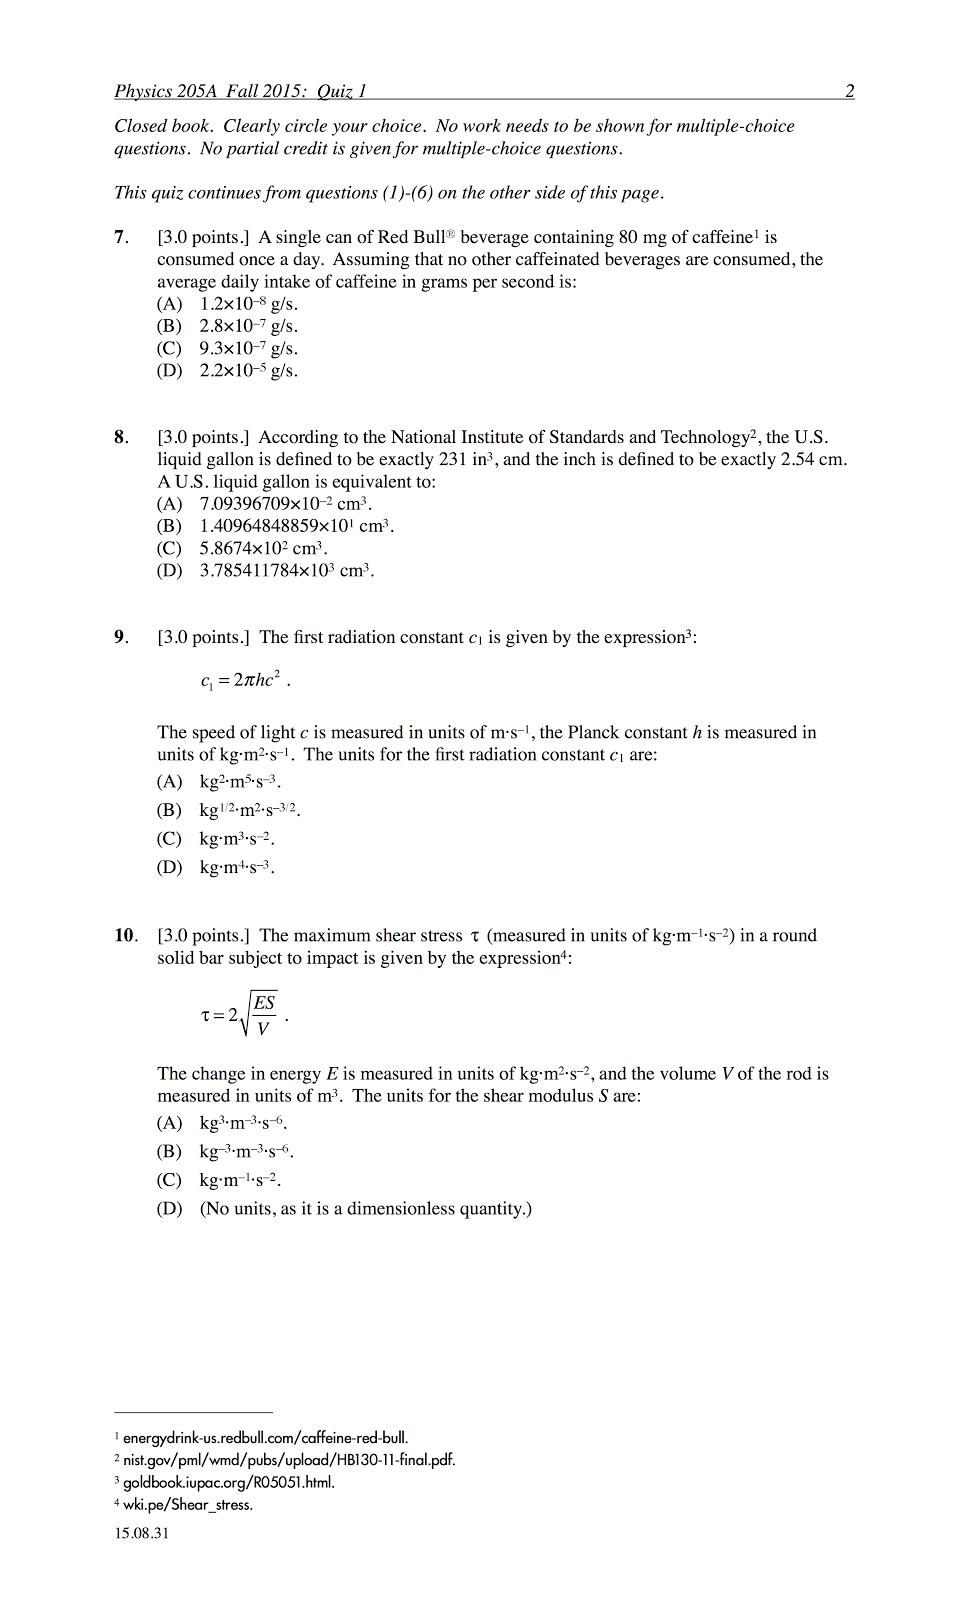 Printables Physics Dimensional Analysis Worksheet And Answers p dogs blog boring but important 201508 physics 205a quiz 1 fall semester 2015 cuesta college san luis obispo ca sections 70854 70855 73320 version exam code quiz01rdbl